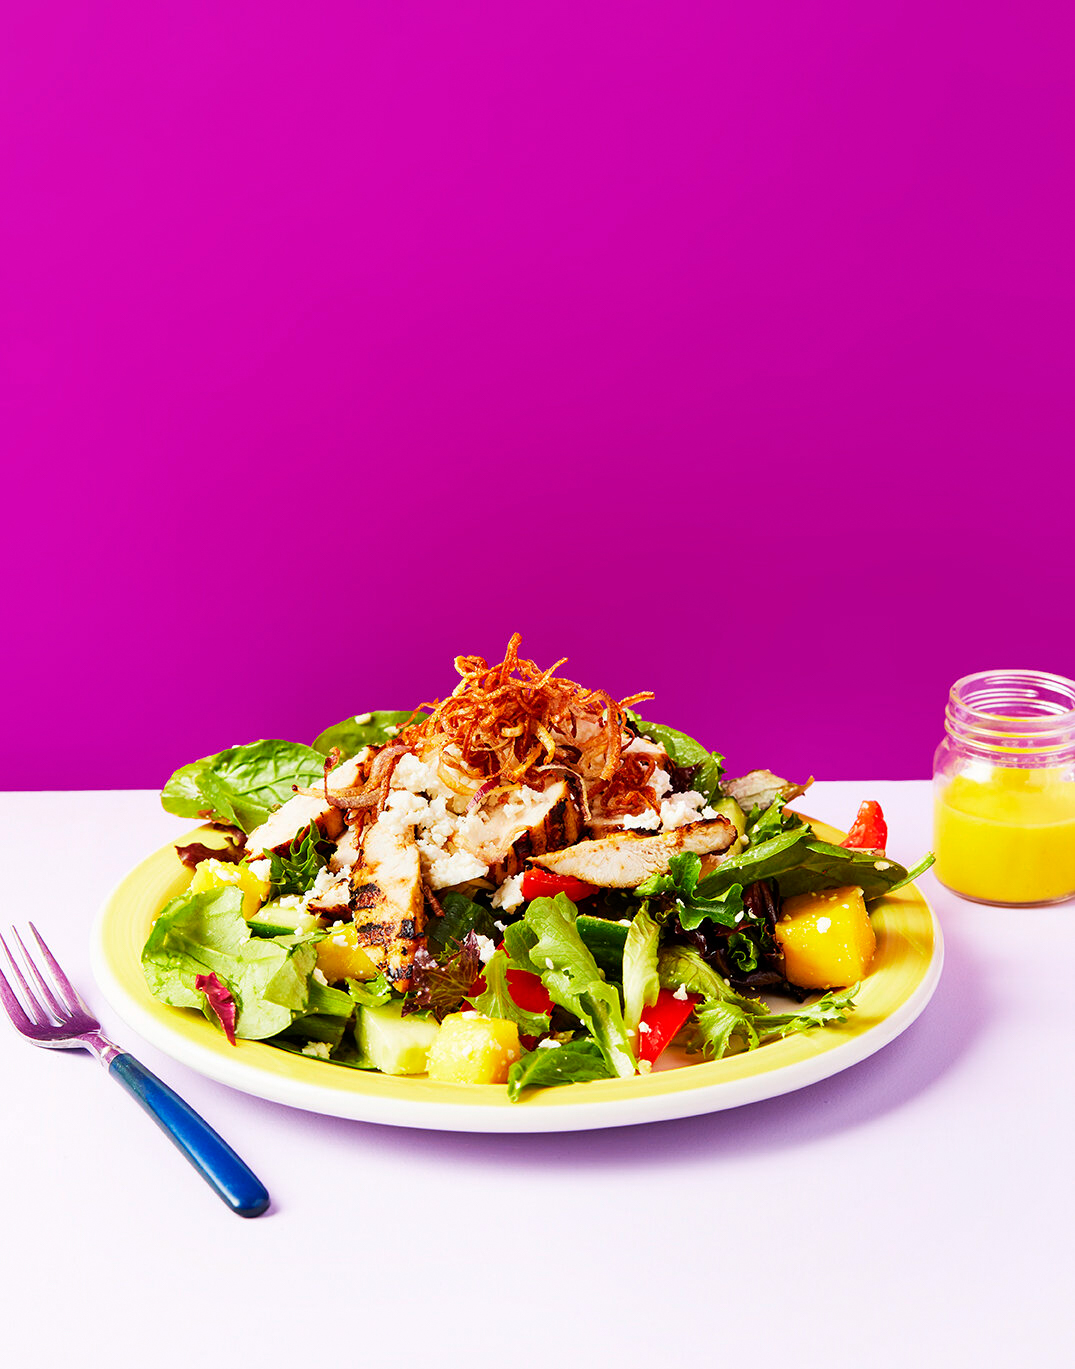 dominic-perri-new-work-storey-publishing-winner-winnen-chicken-dinner-cookbook-grilled-chicken-mango-salad